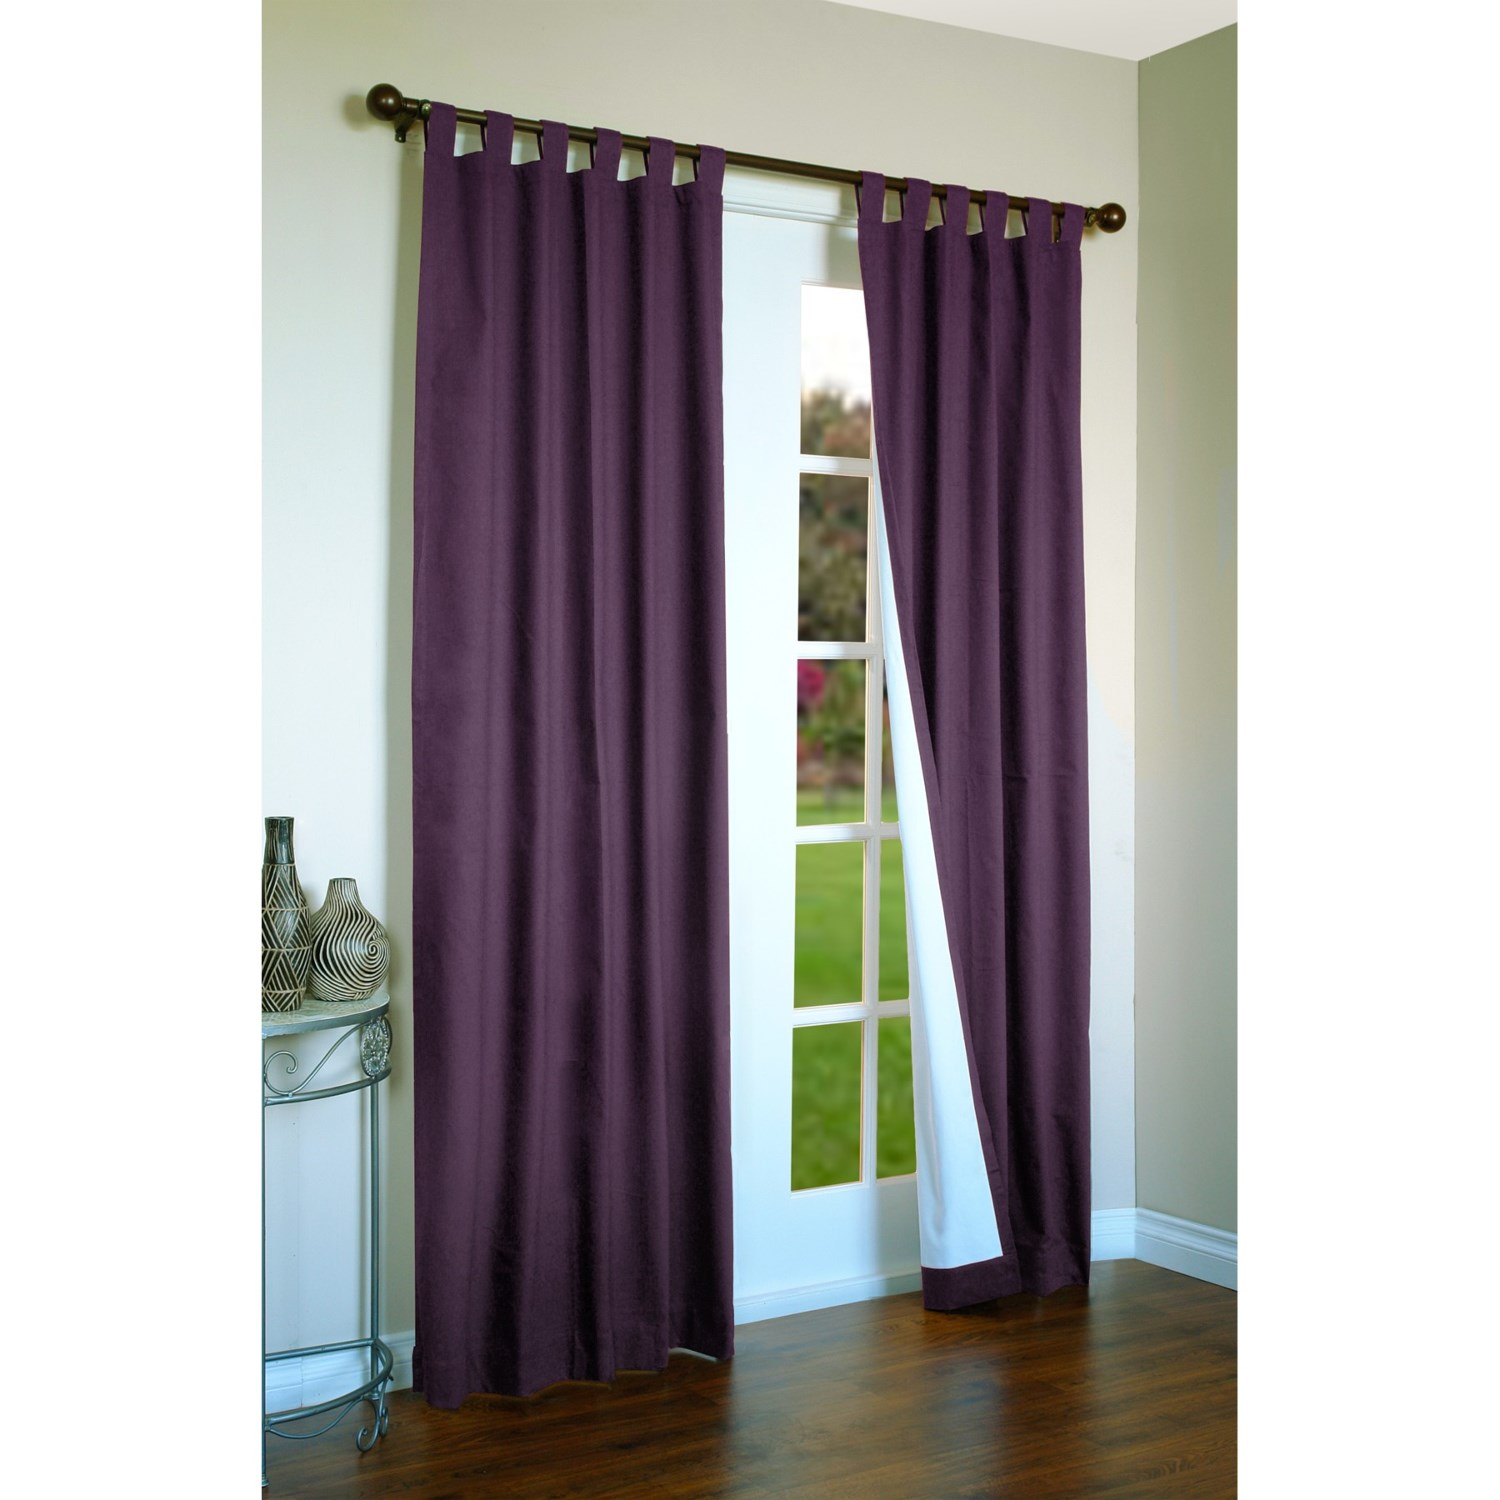 Thermalogic Weathermate Curtains 80x72 Tab Top Insulated